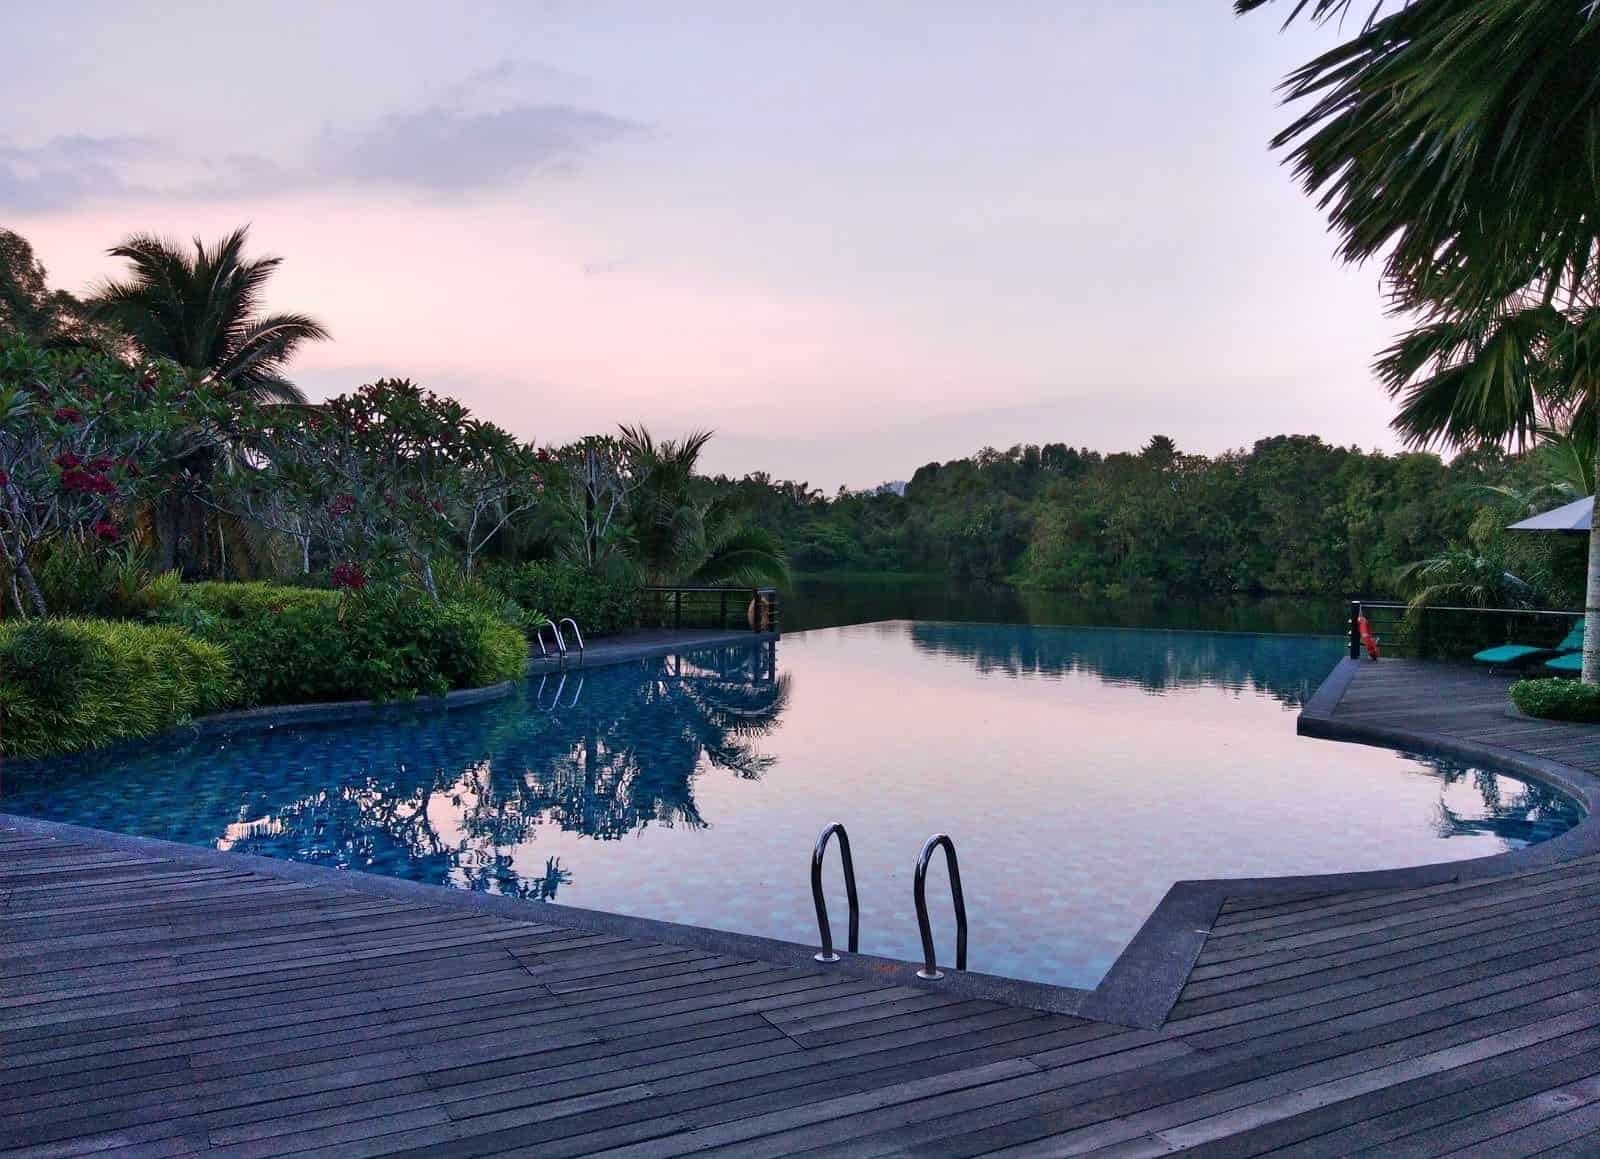 The shared pool and landscape at Mangala Resort & Spa in Malaysia // travelmermaid.com